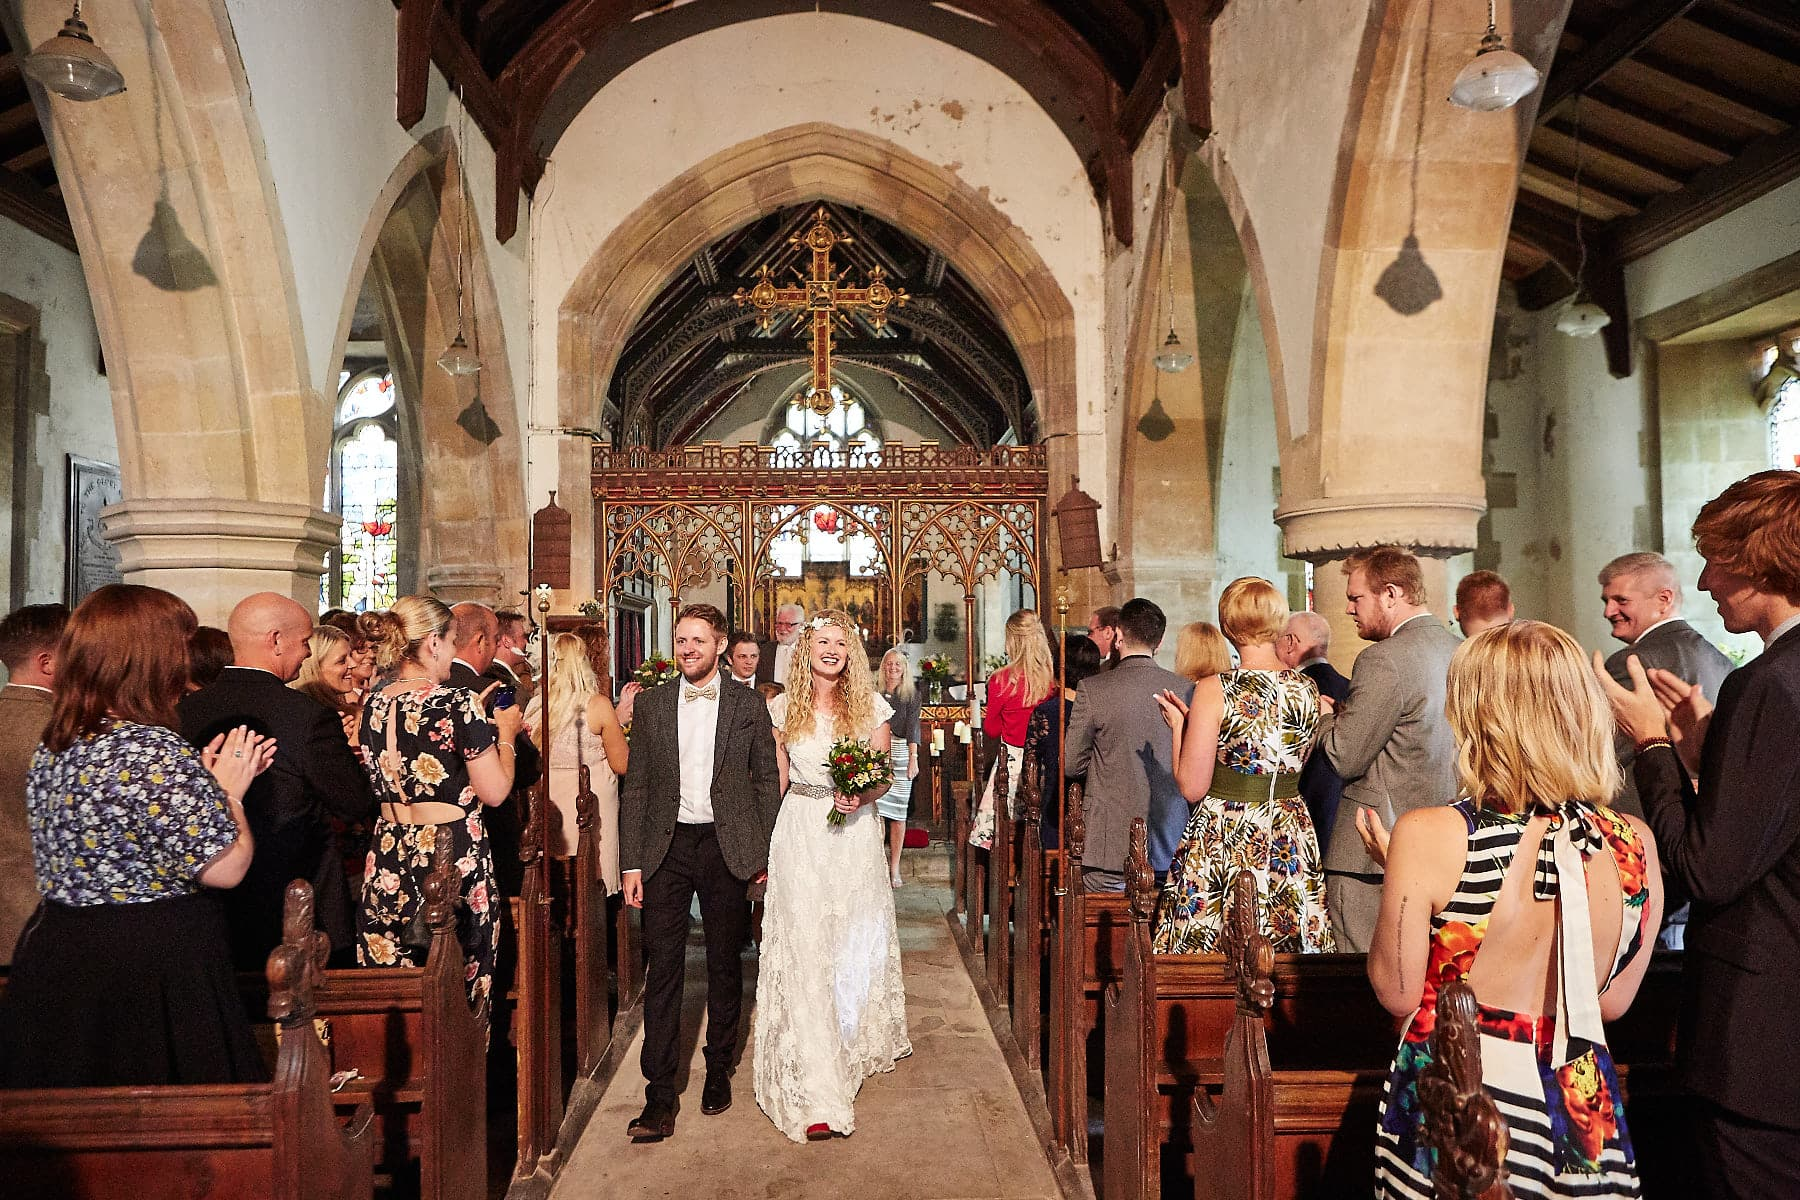 A couple smile and wave to friends as they leave the church on their wedding day in Lincolnshire.